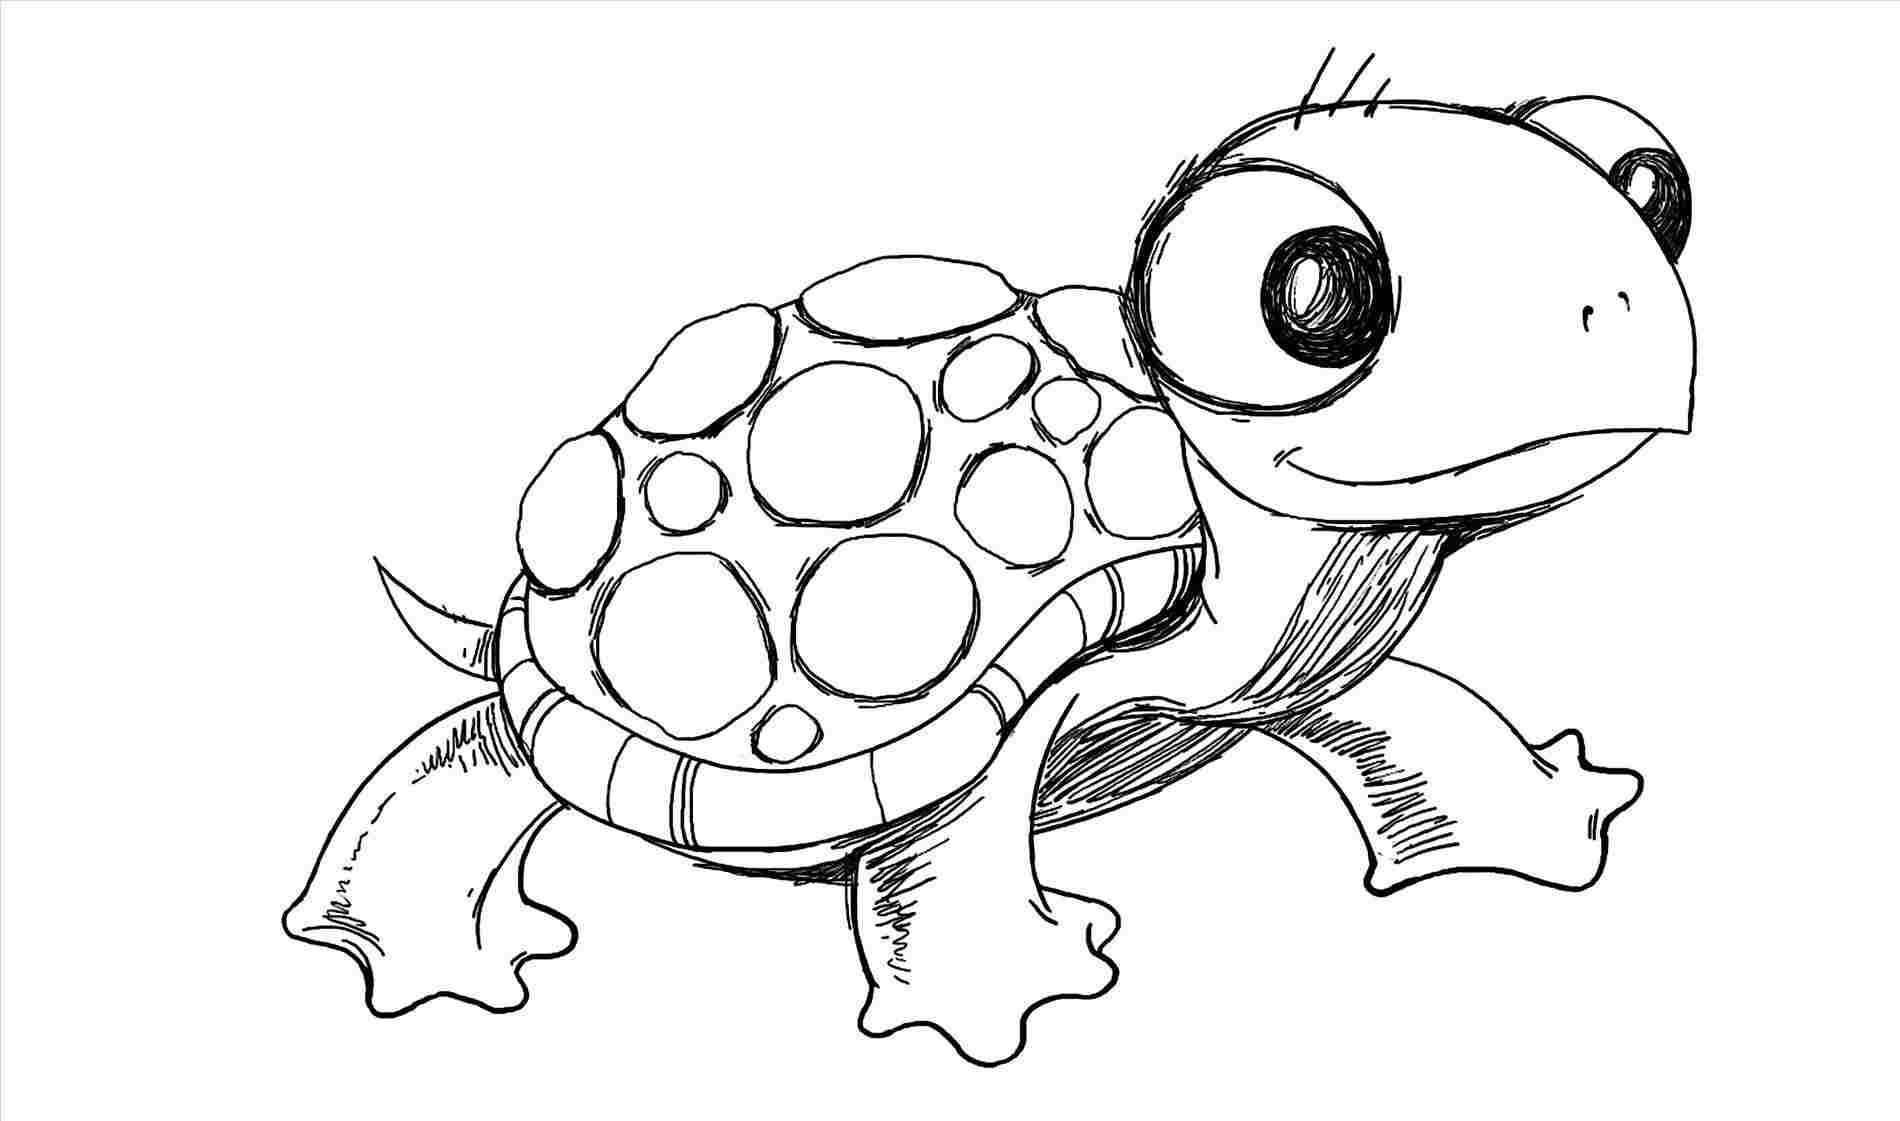 Turtle pencil drawing free download best turtle pencil drawing on